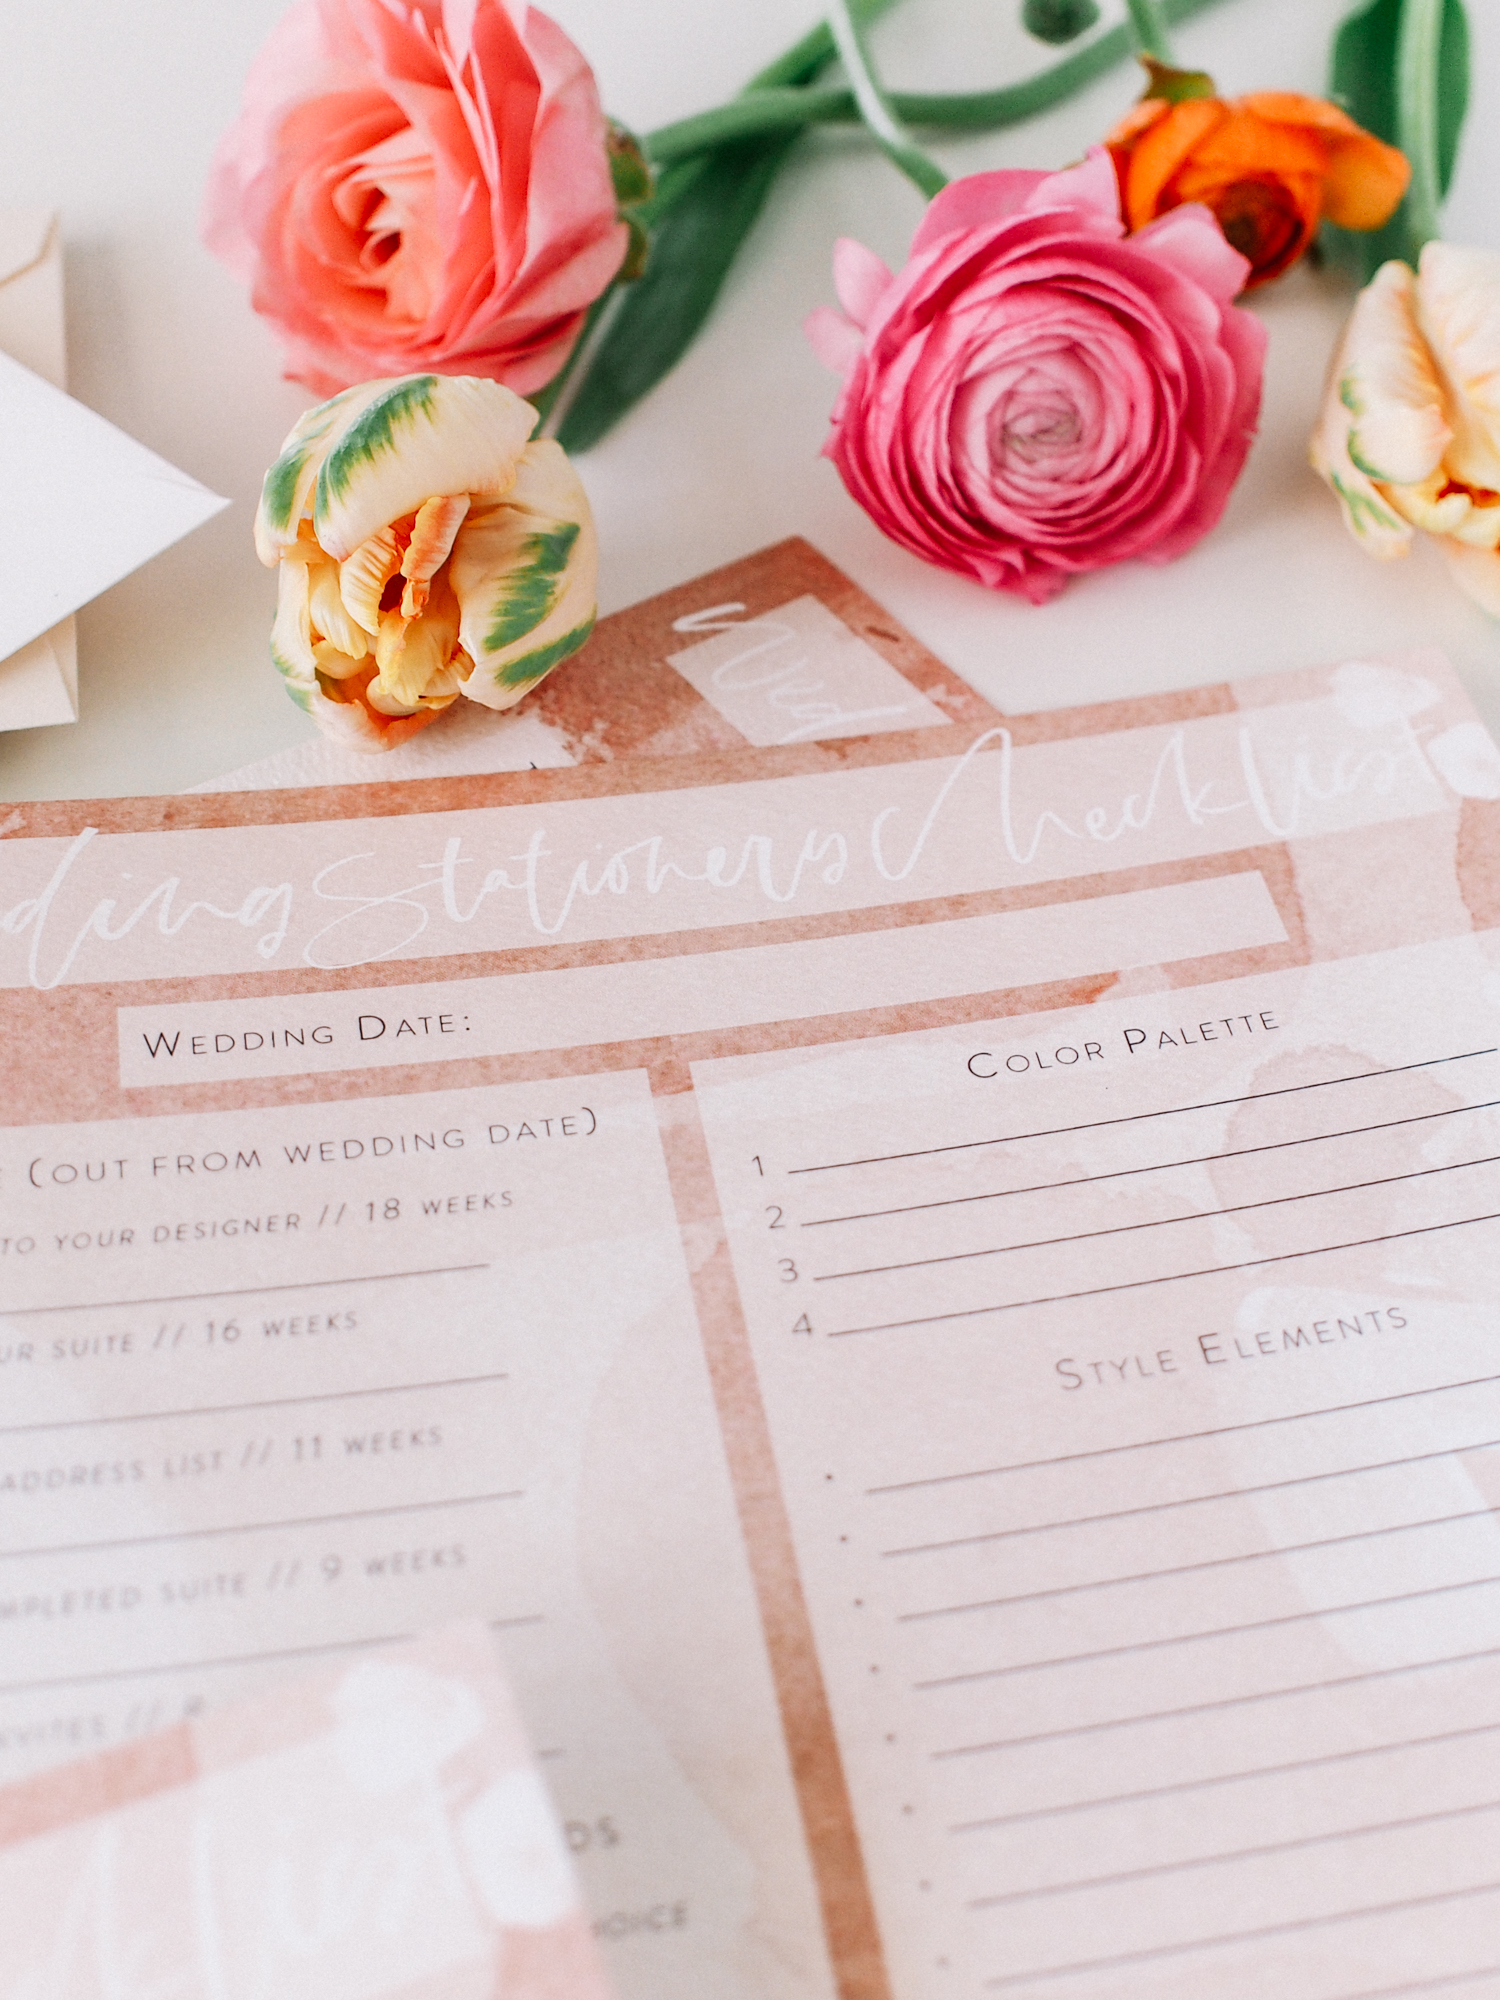 Need help planning your wedding stationery? Download this free checklist to get you started! | A Fabulous Fete